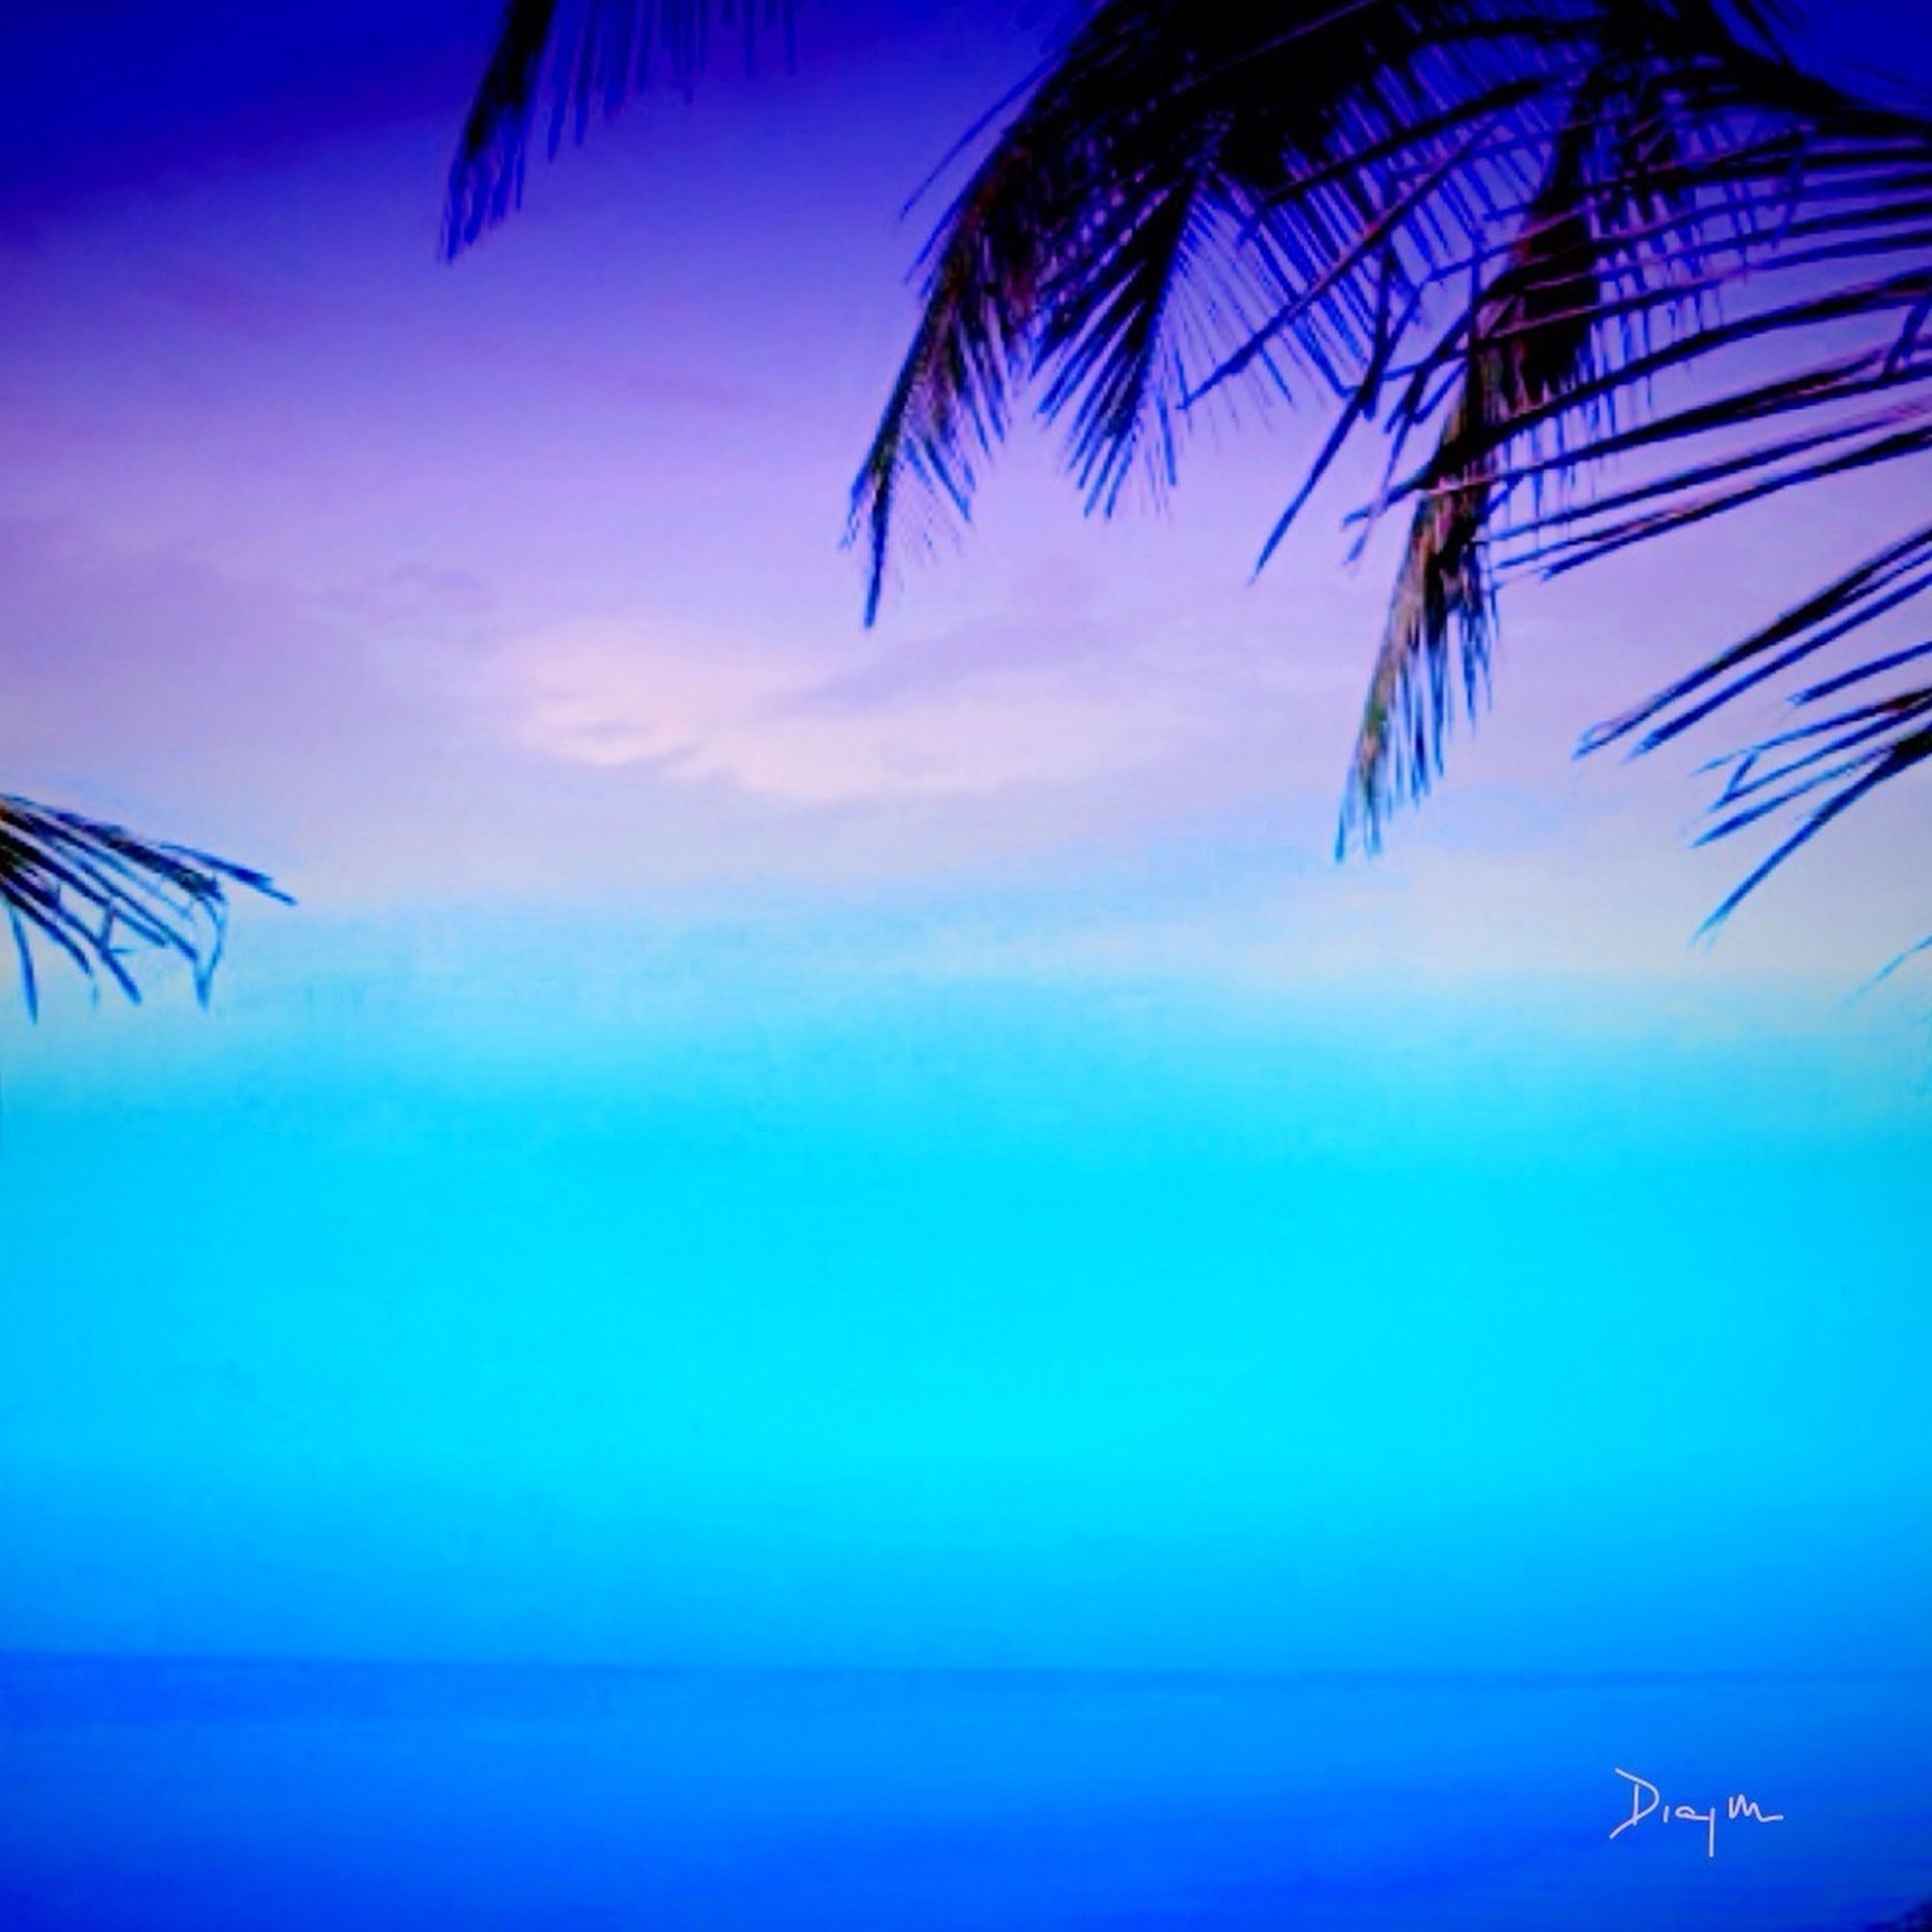 blue, low angle view, nature, sky, palm tree, beauty in nature, tranquility, scenics, tranquil scene, sea, no people, outdoors, growth, flying, day, idyllic, cloud, clear sky, cloud - sky, silhouette